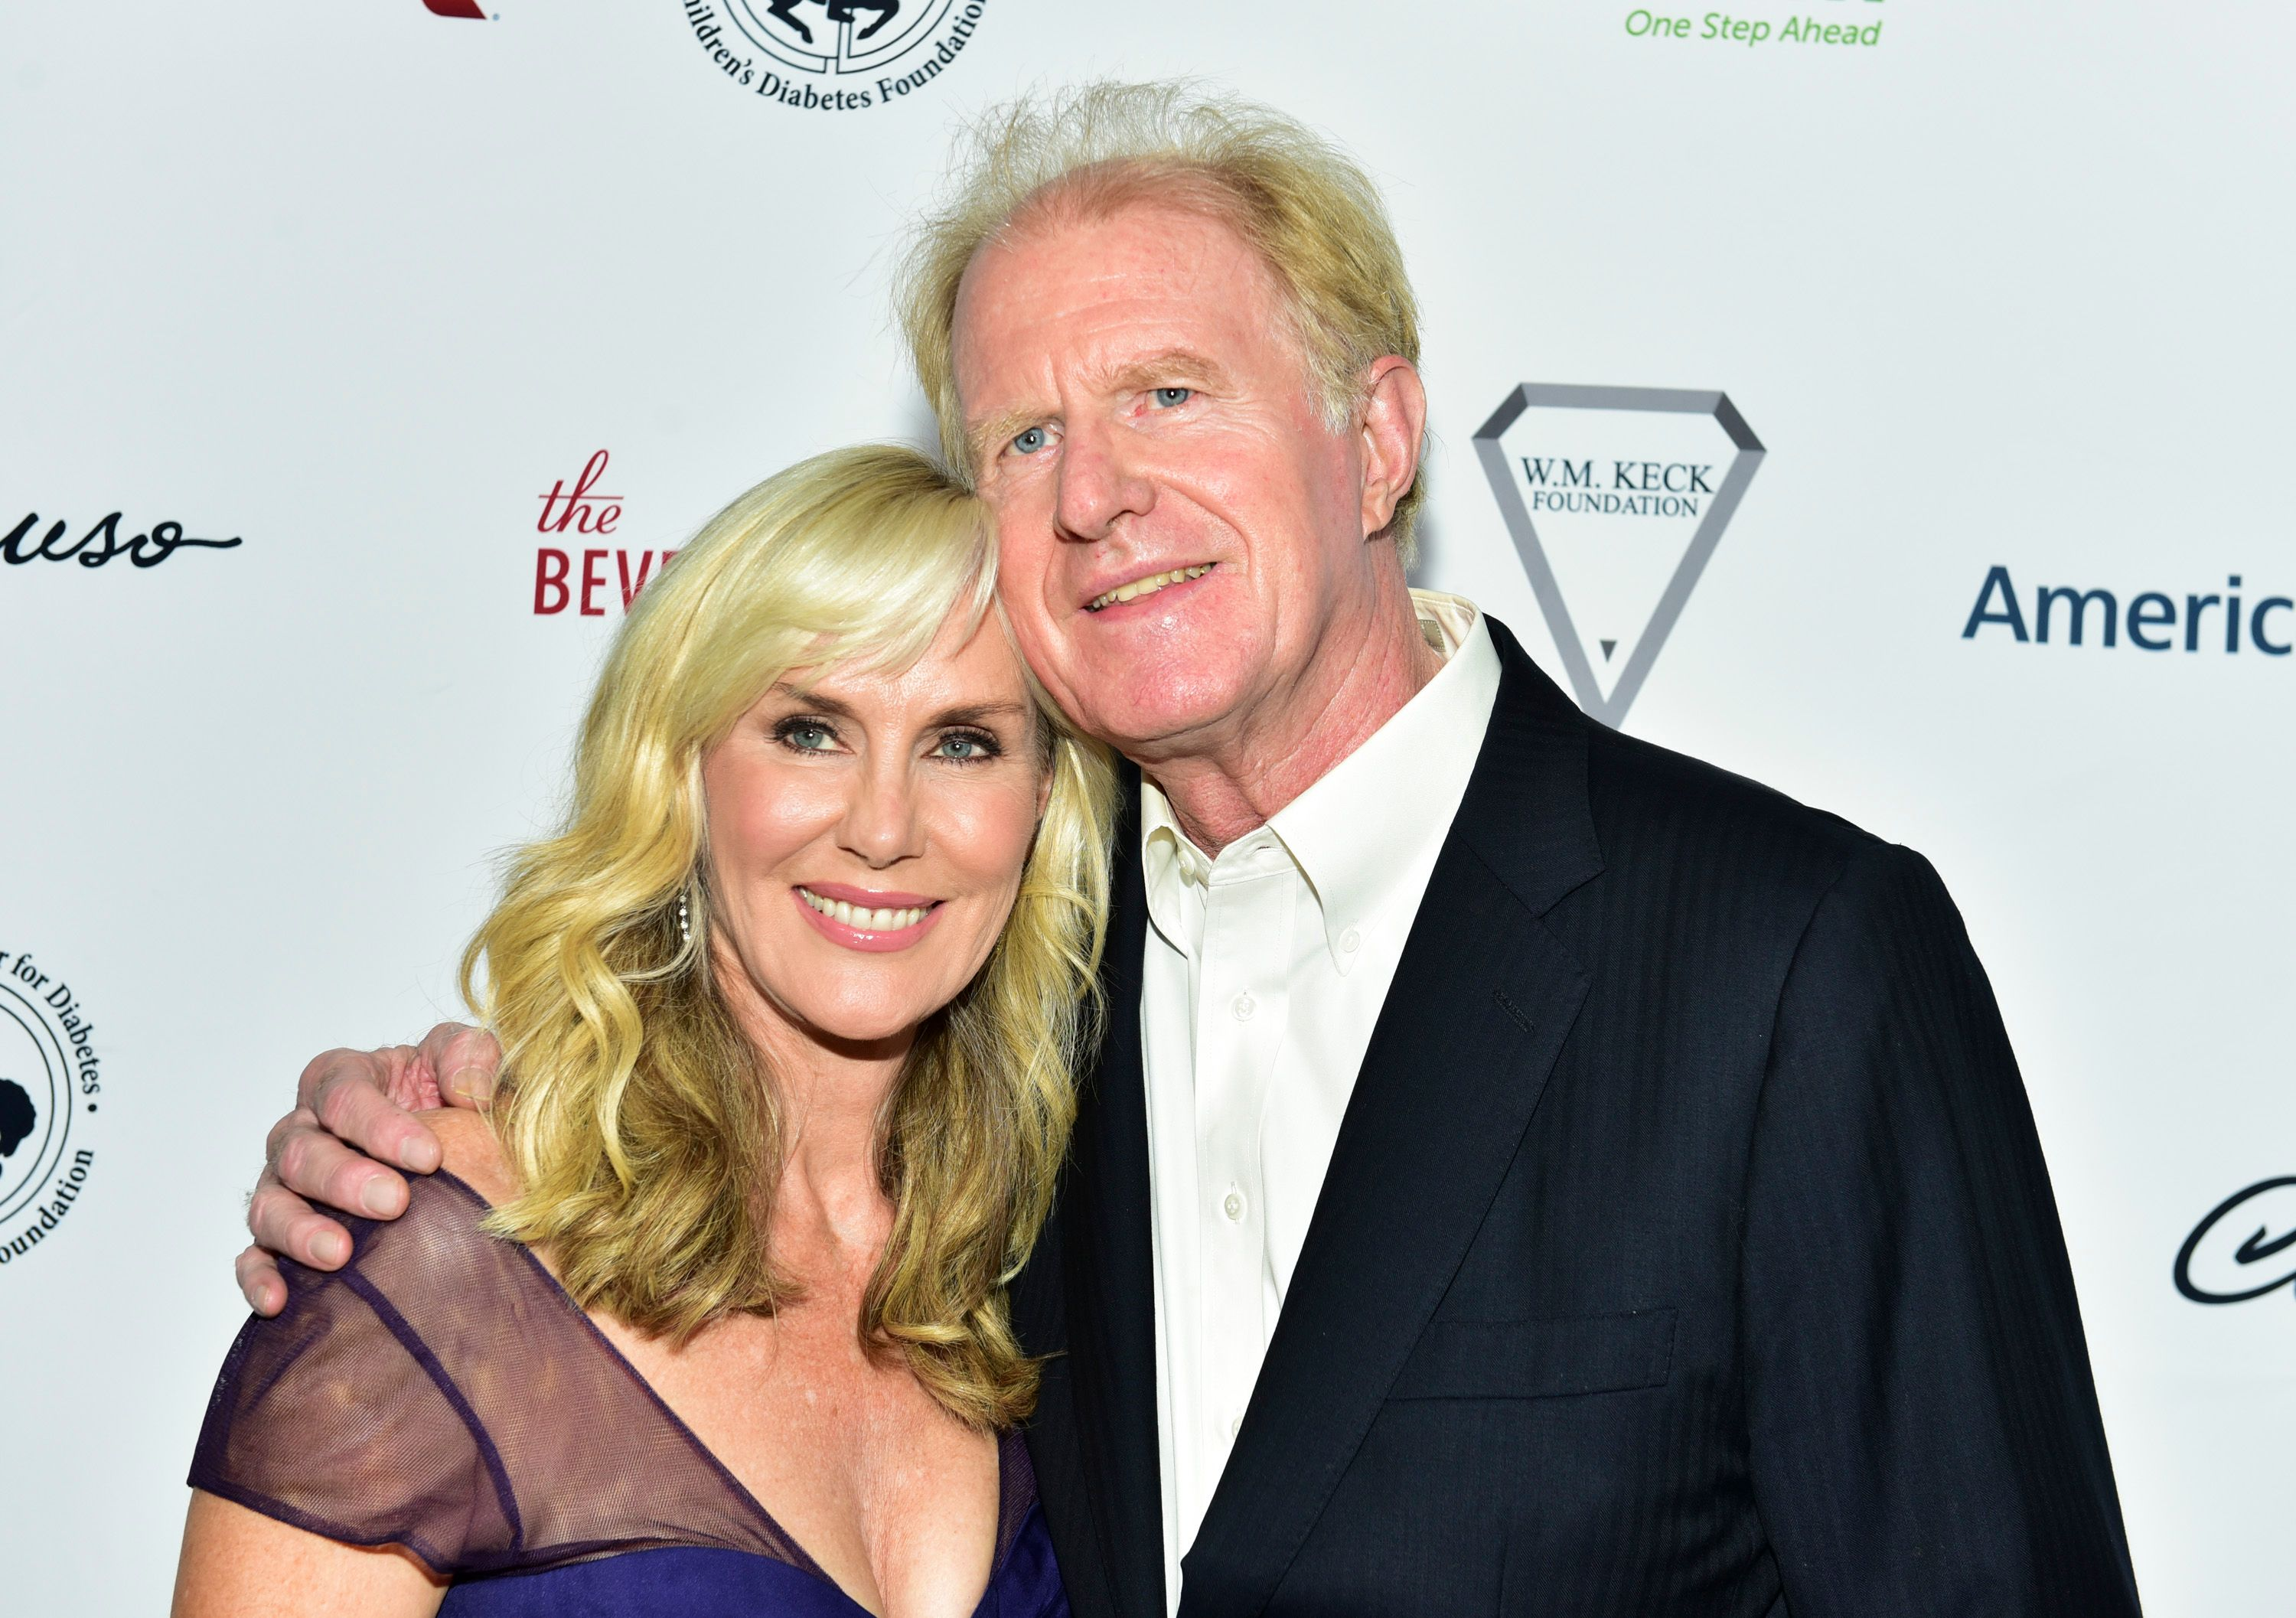 Ed Begley Jr. (R) and Rachelle Carson attend the 2018 Carousel of Hope Ball at The Beverly Hilton Hotel on October 6, 2018 in Beverly Hills, California.   Source: Getty Images